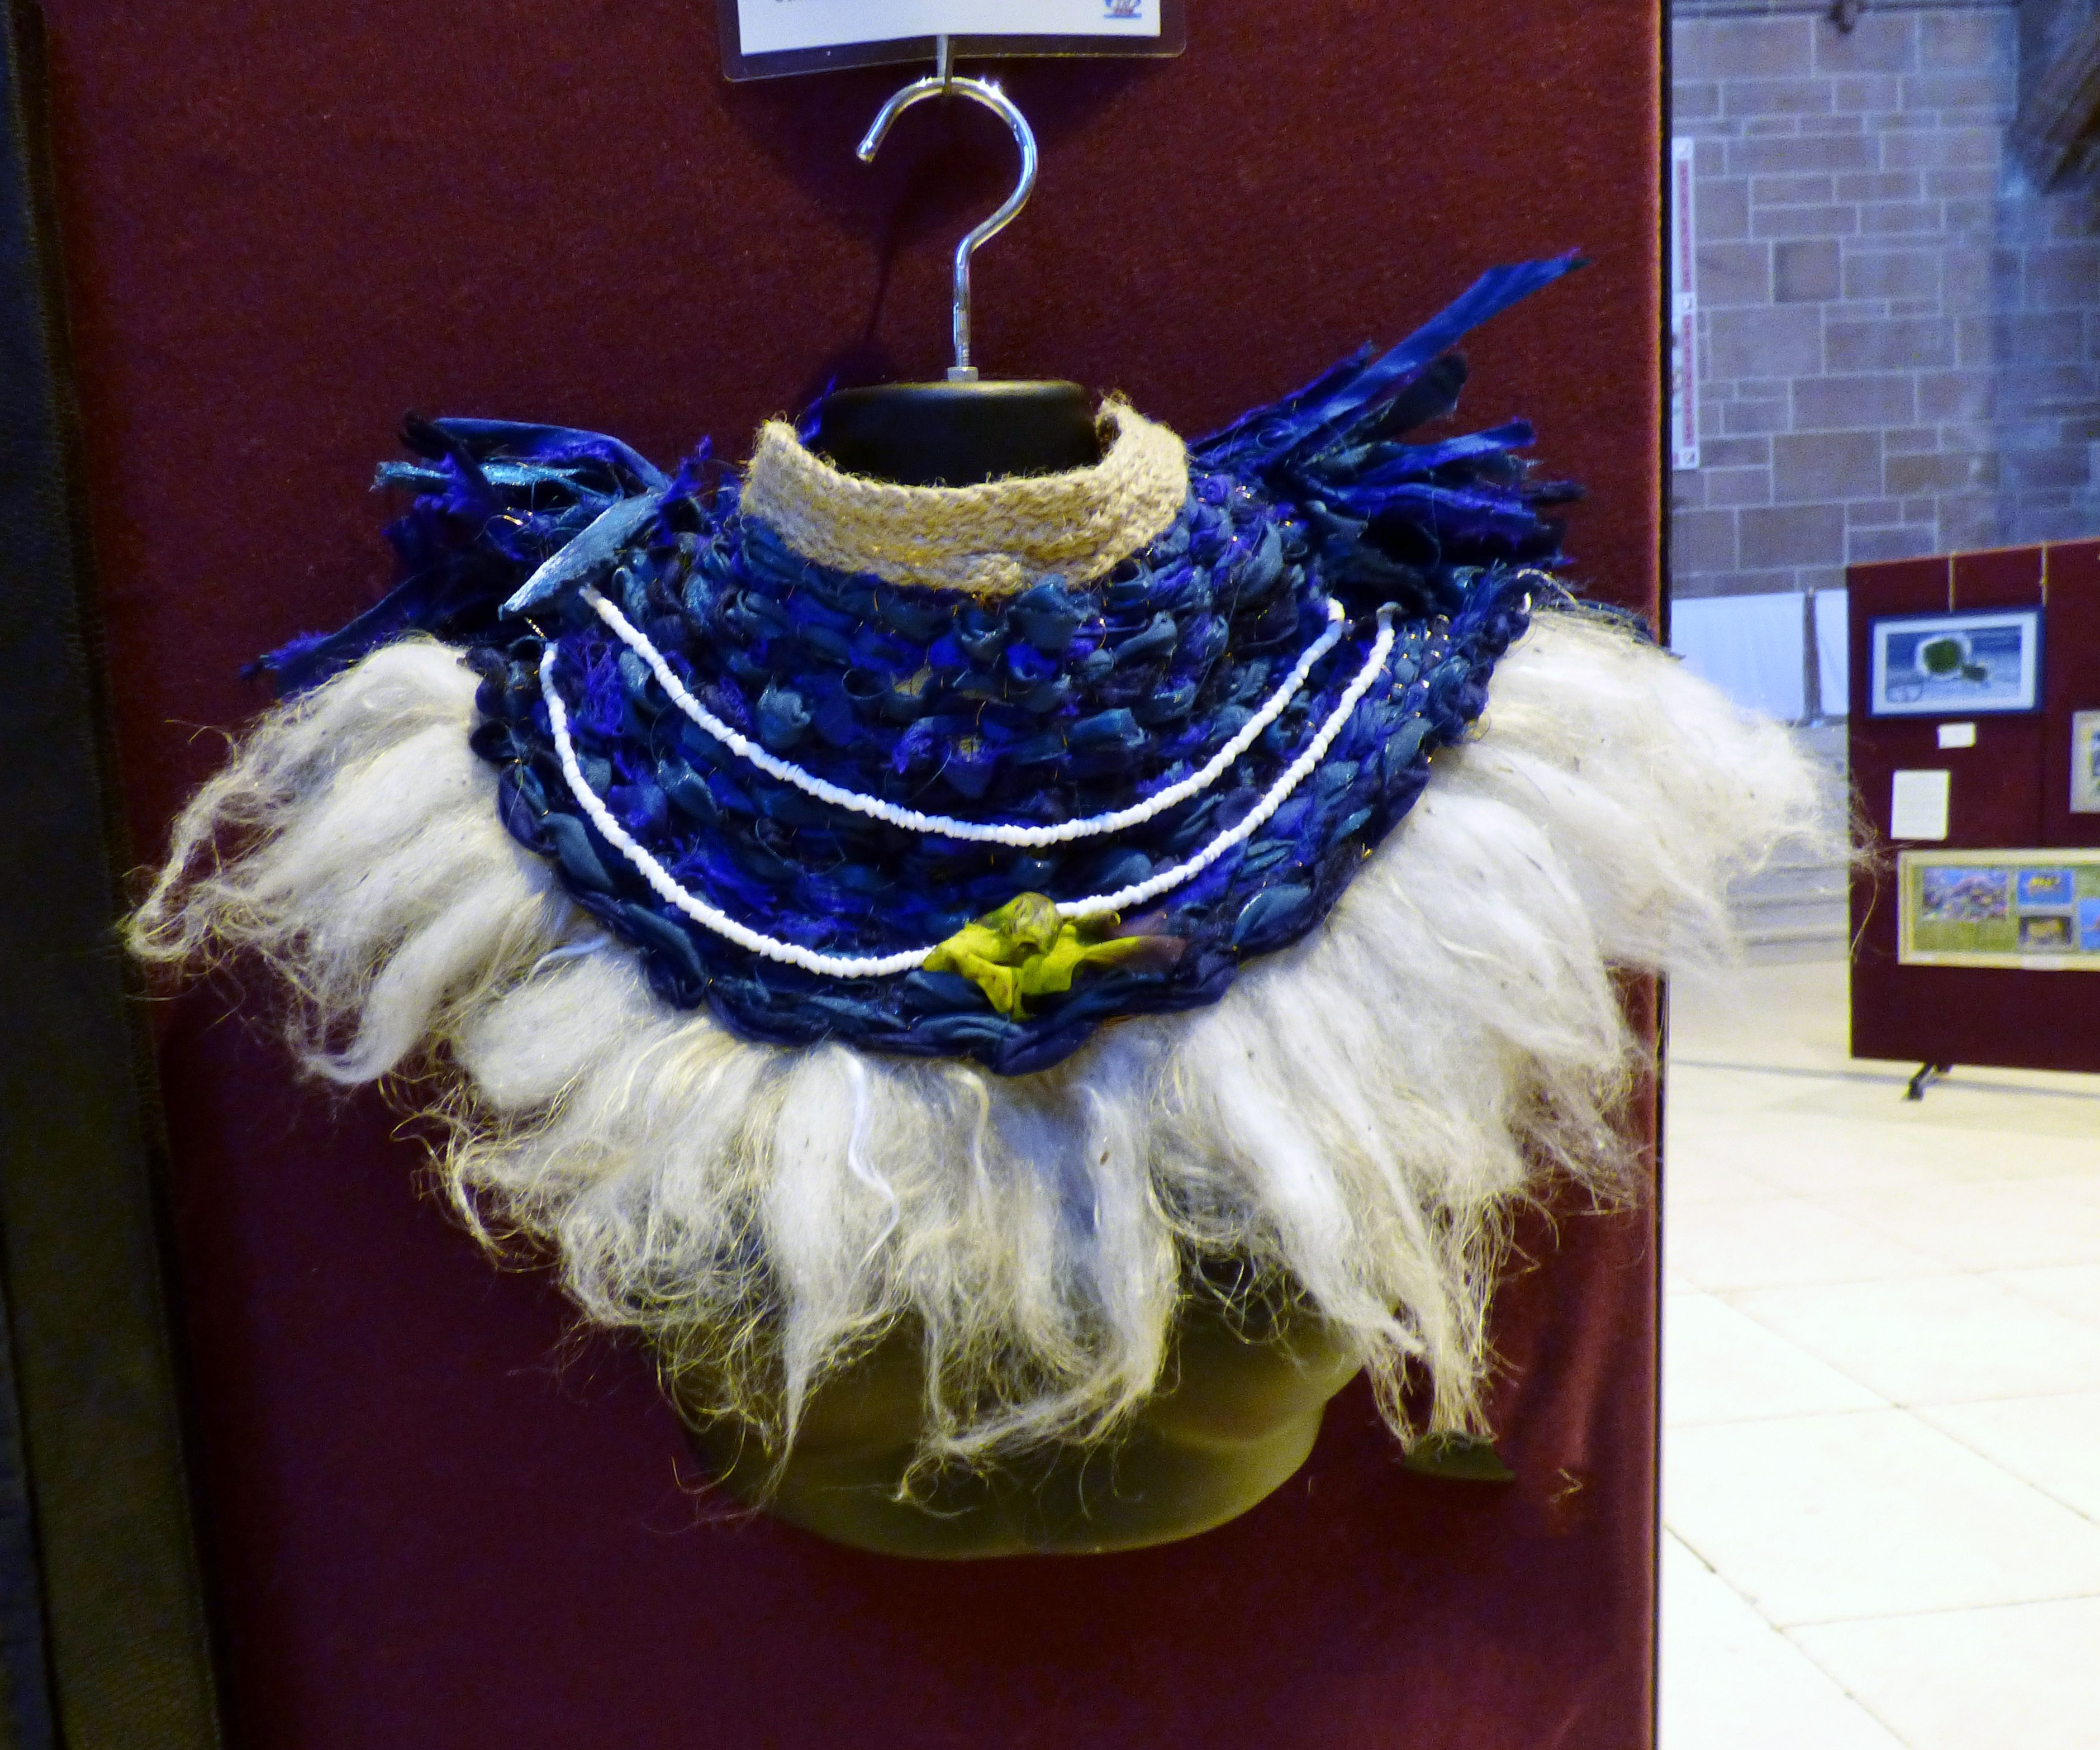 TRIBAL INSPIRED COLLAR by Karen Scott, mixed media, Endeavour exhibition, Liverpool Cathedral, Sept 2018